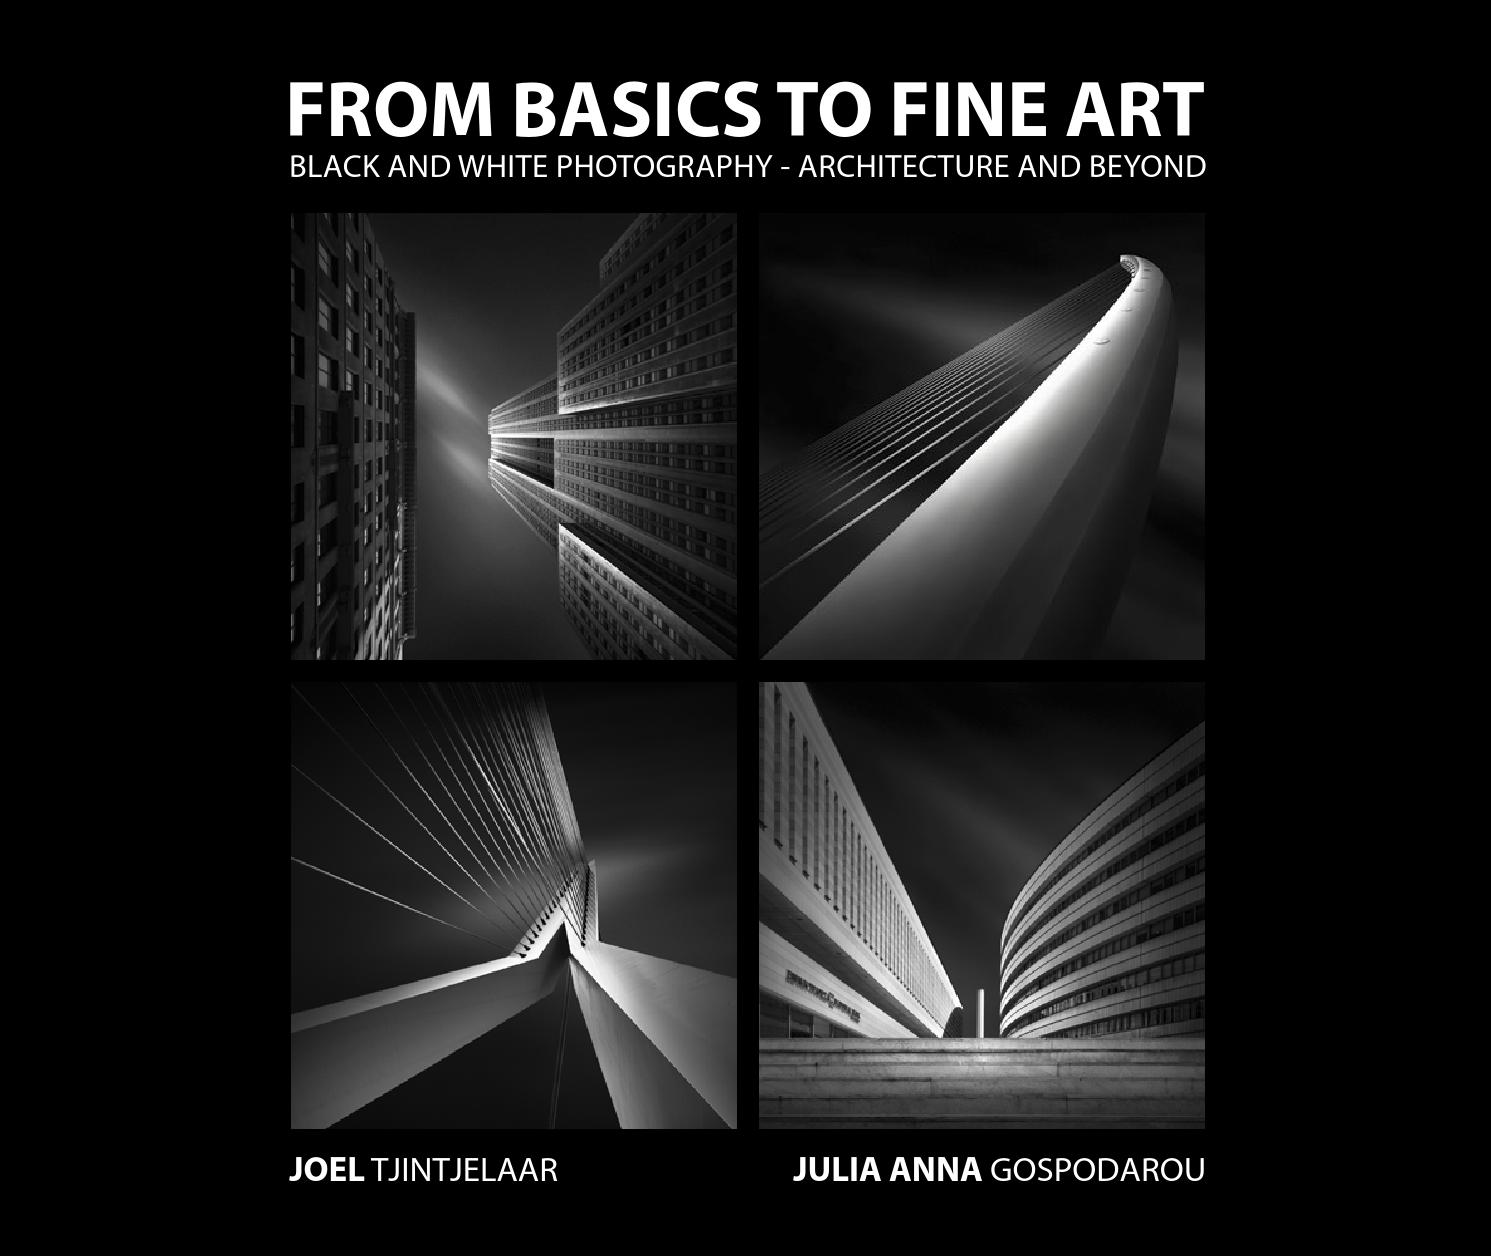 From basics to fine art bw photography by julia anna gospodarou joel tjintjelaar book preview by julia anna gospodarou issuu